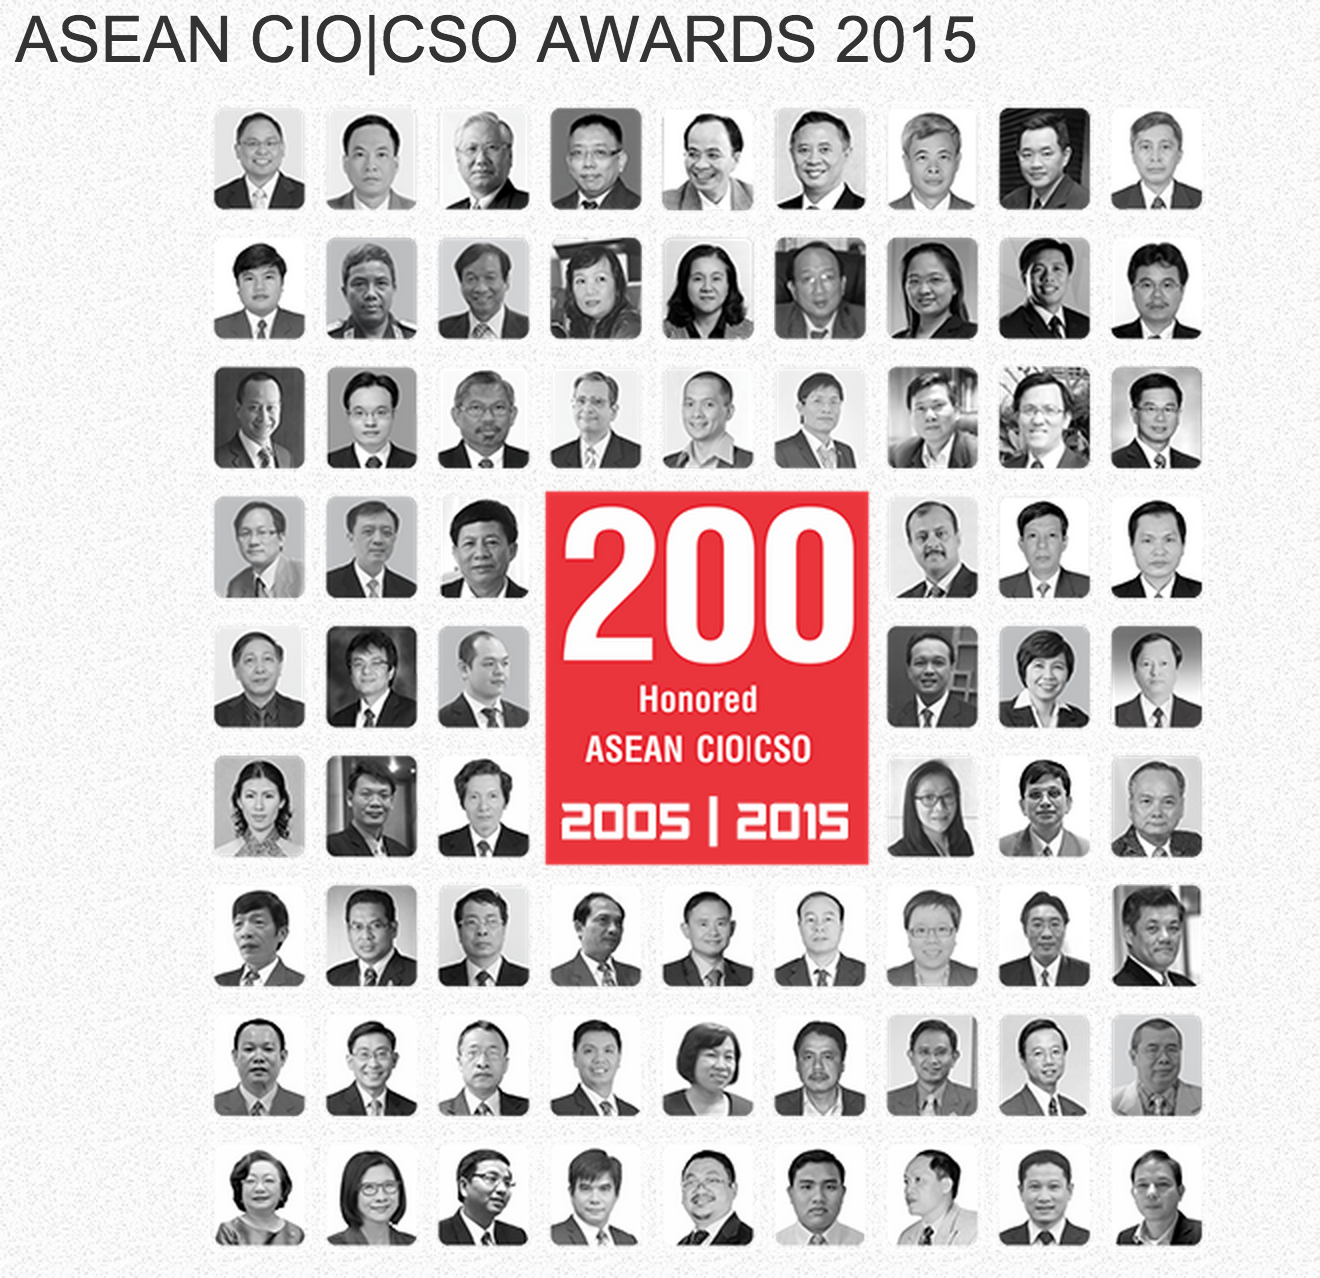 Urgent Need Candidates For Up-coming CIO/CSO Awards 2015